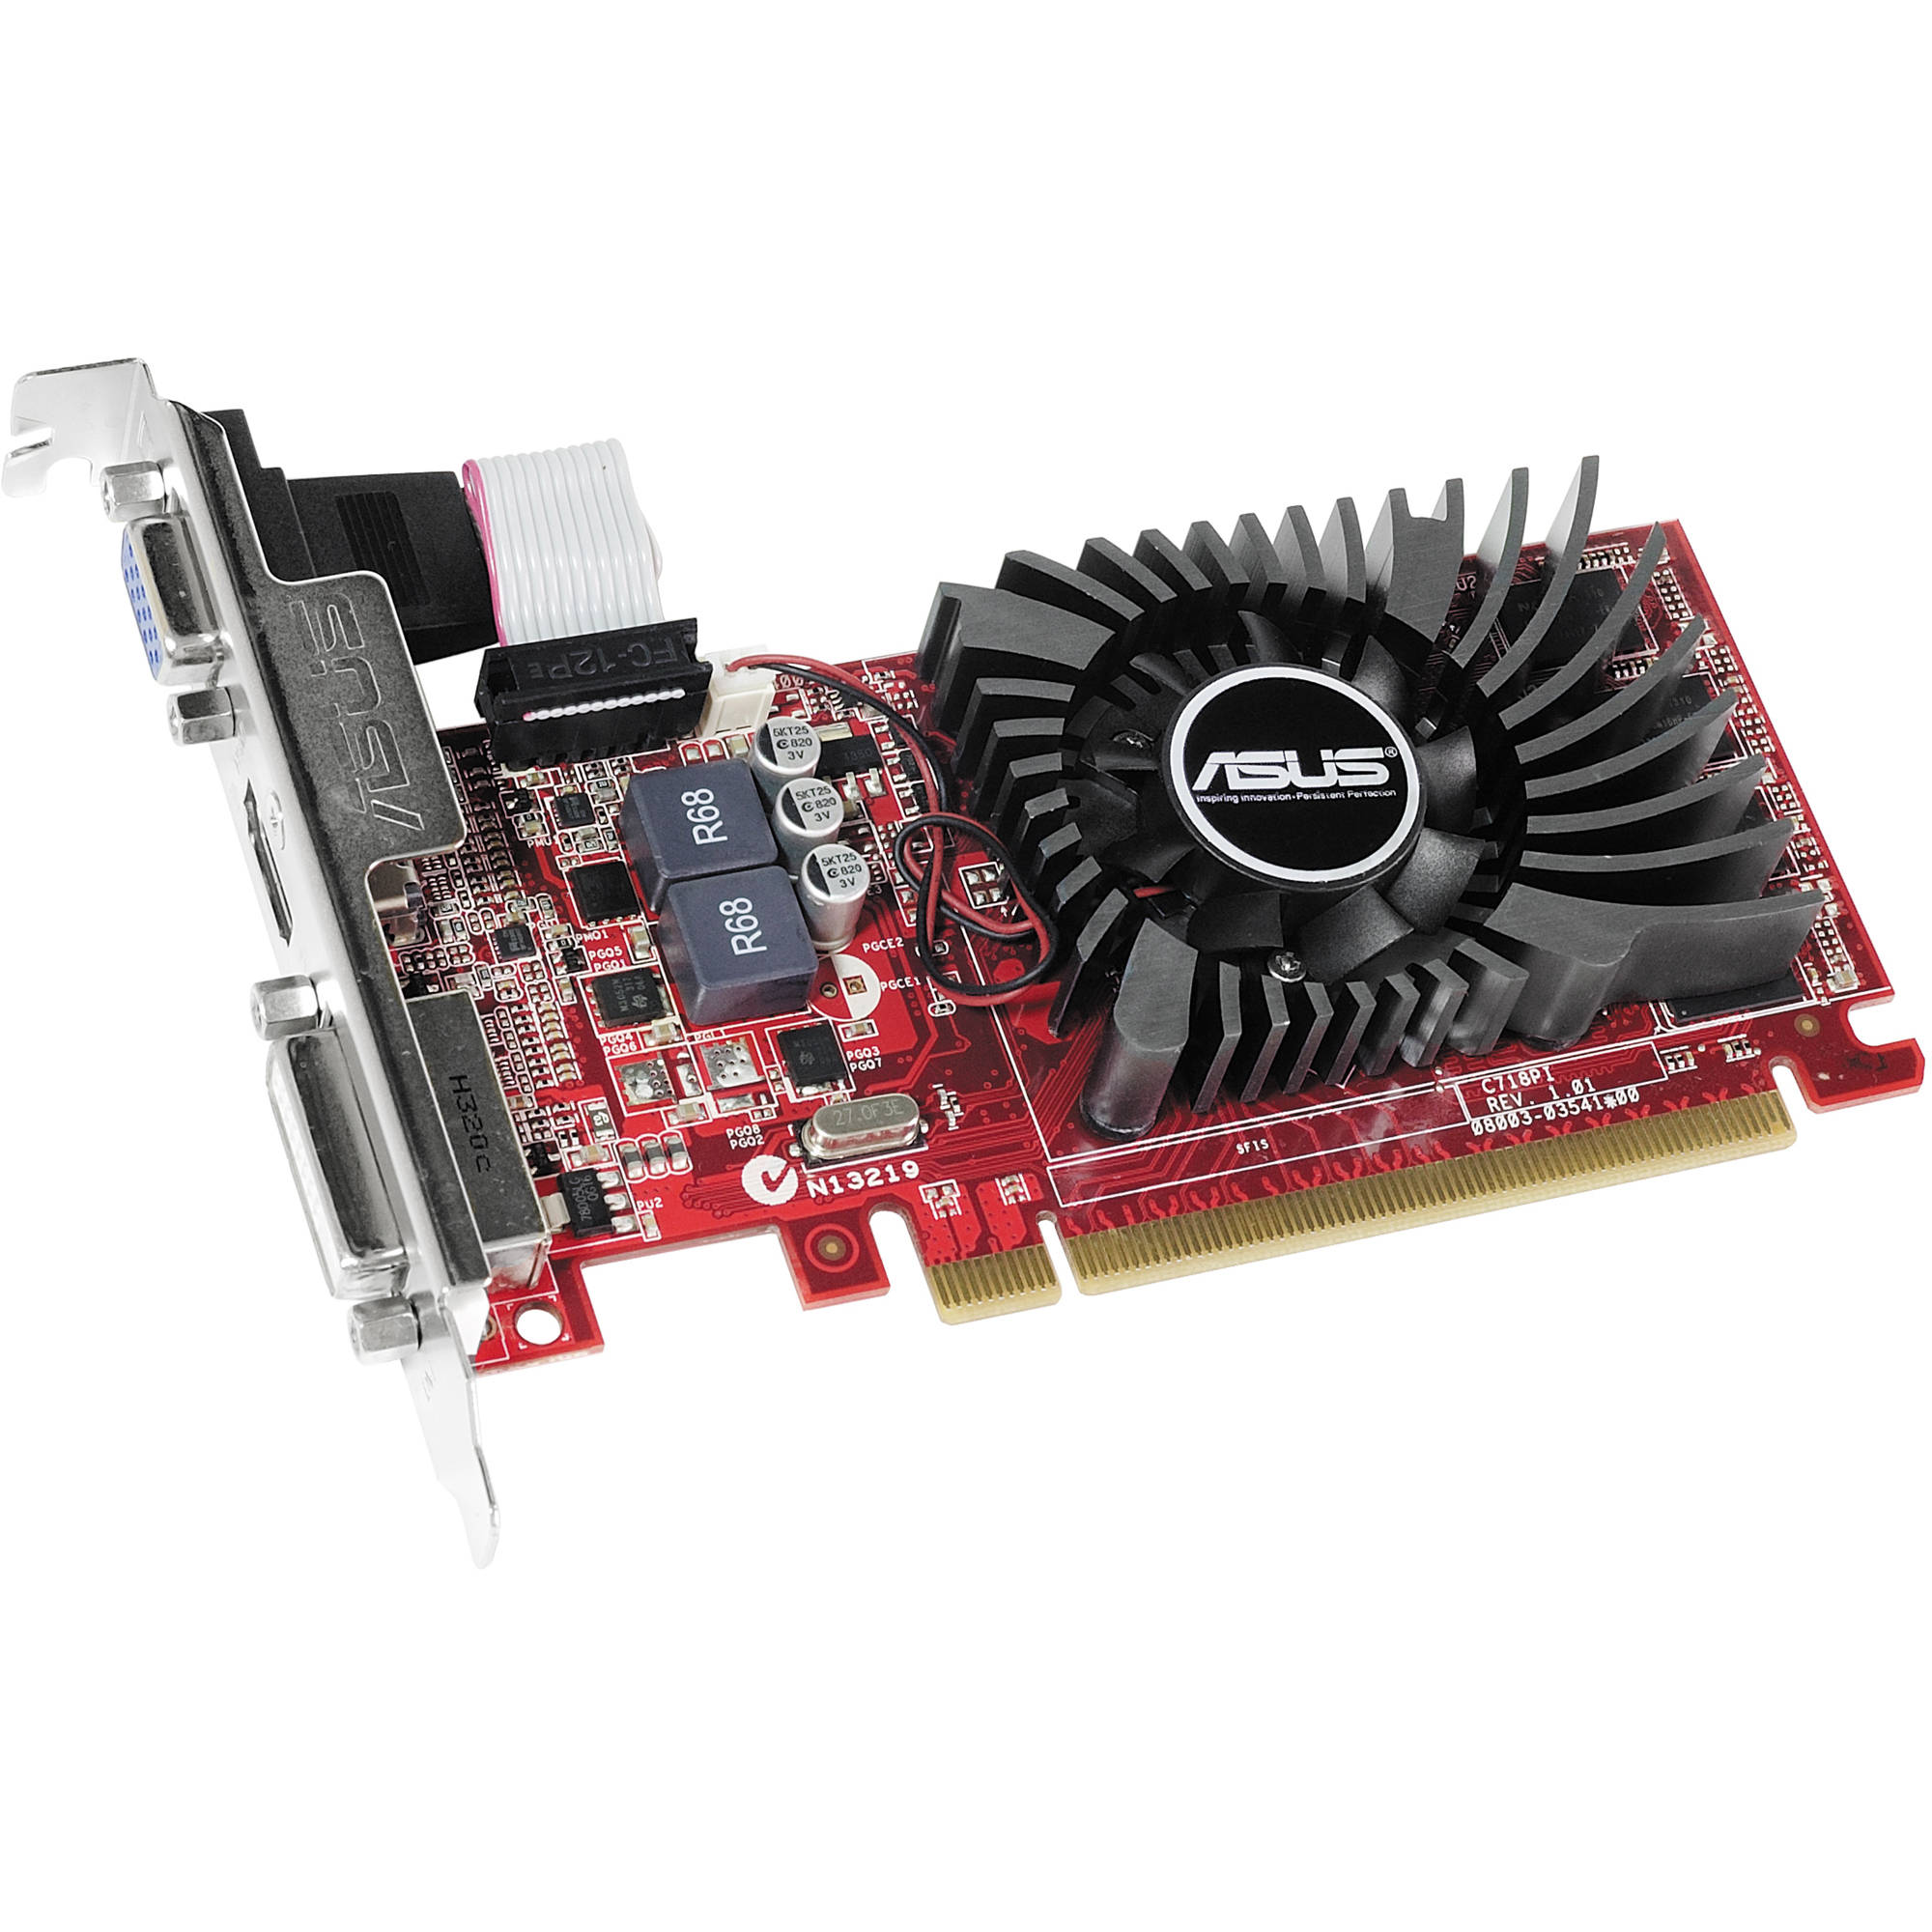 N13219 ASUS VGA CARD DRIVER FOR WINDOWS DOWNLOAD